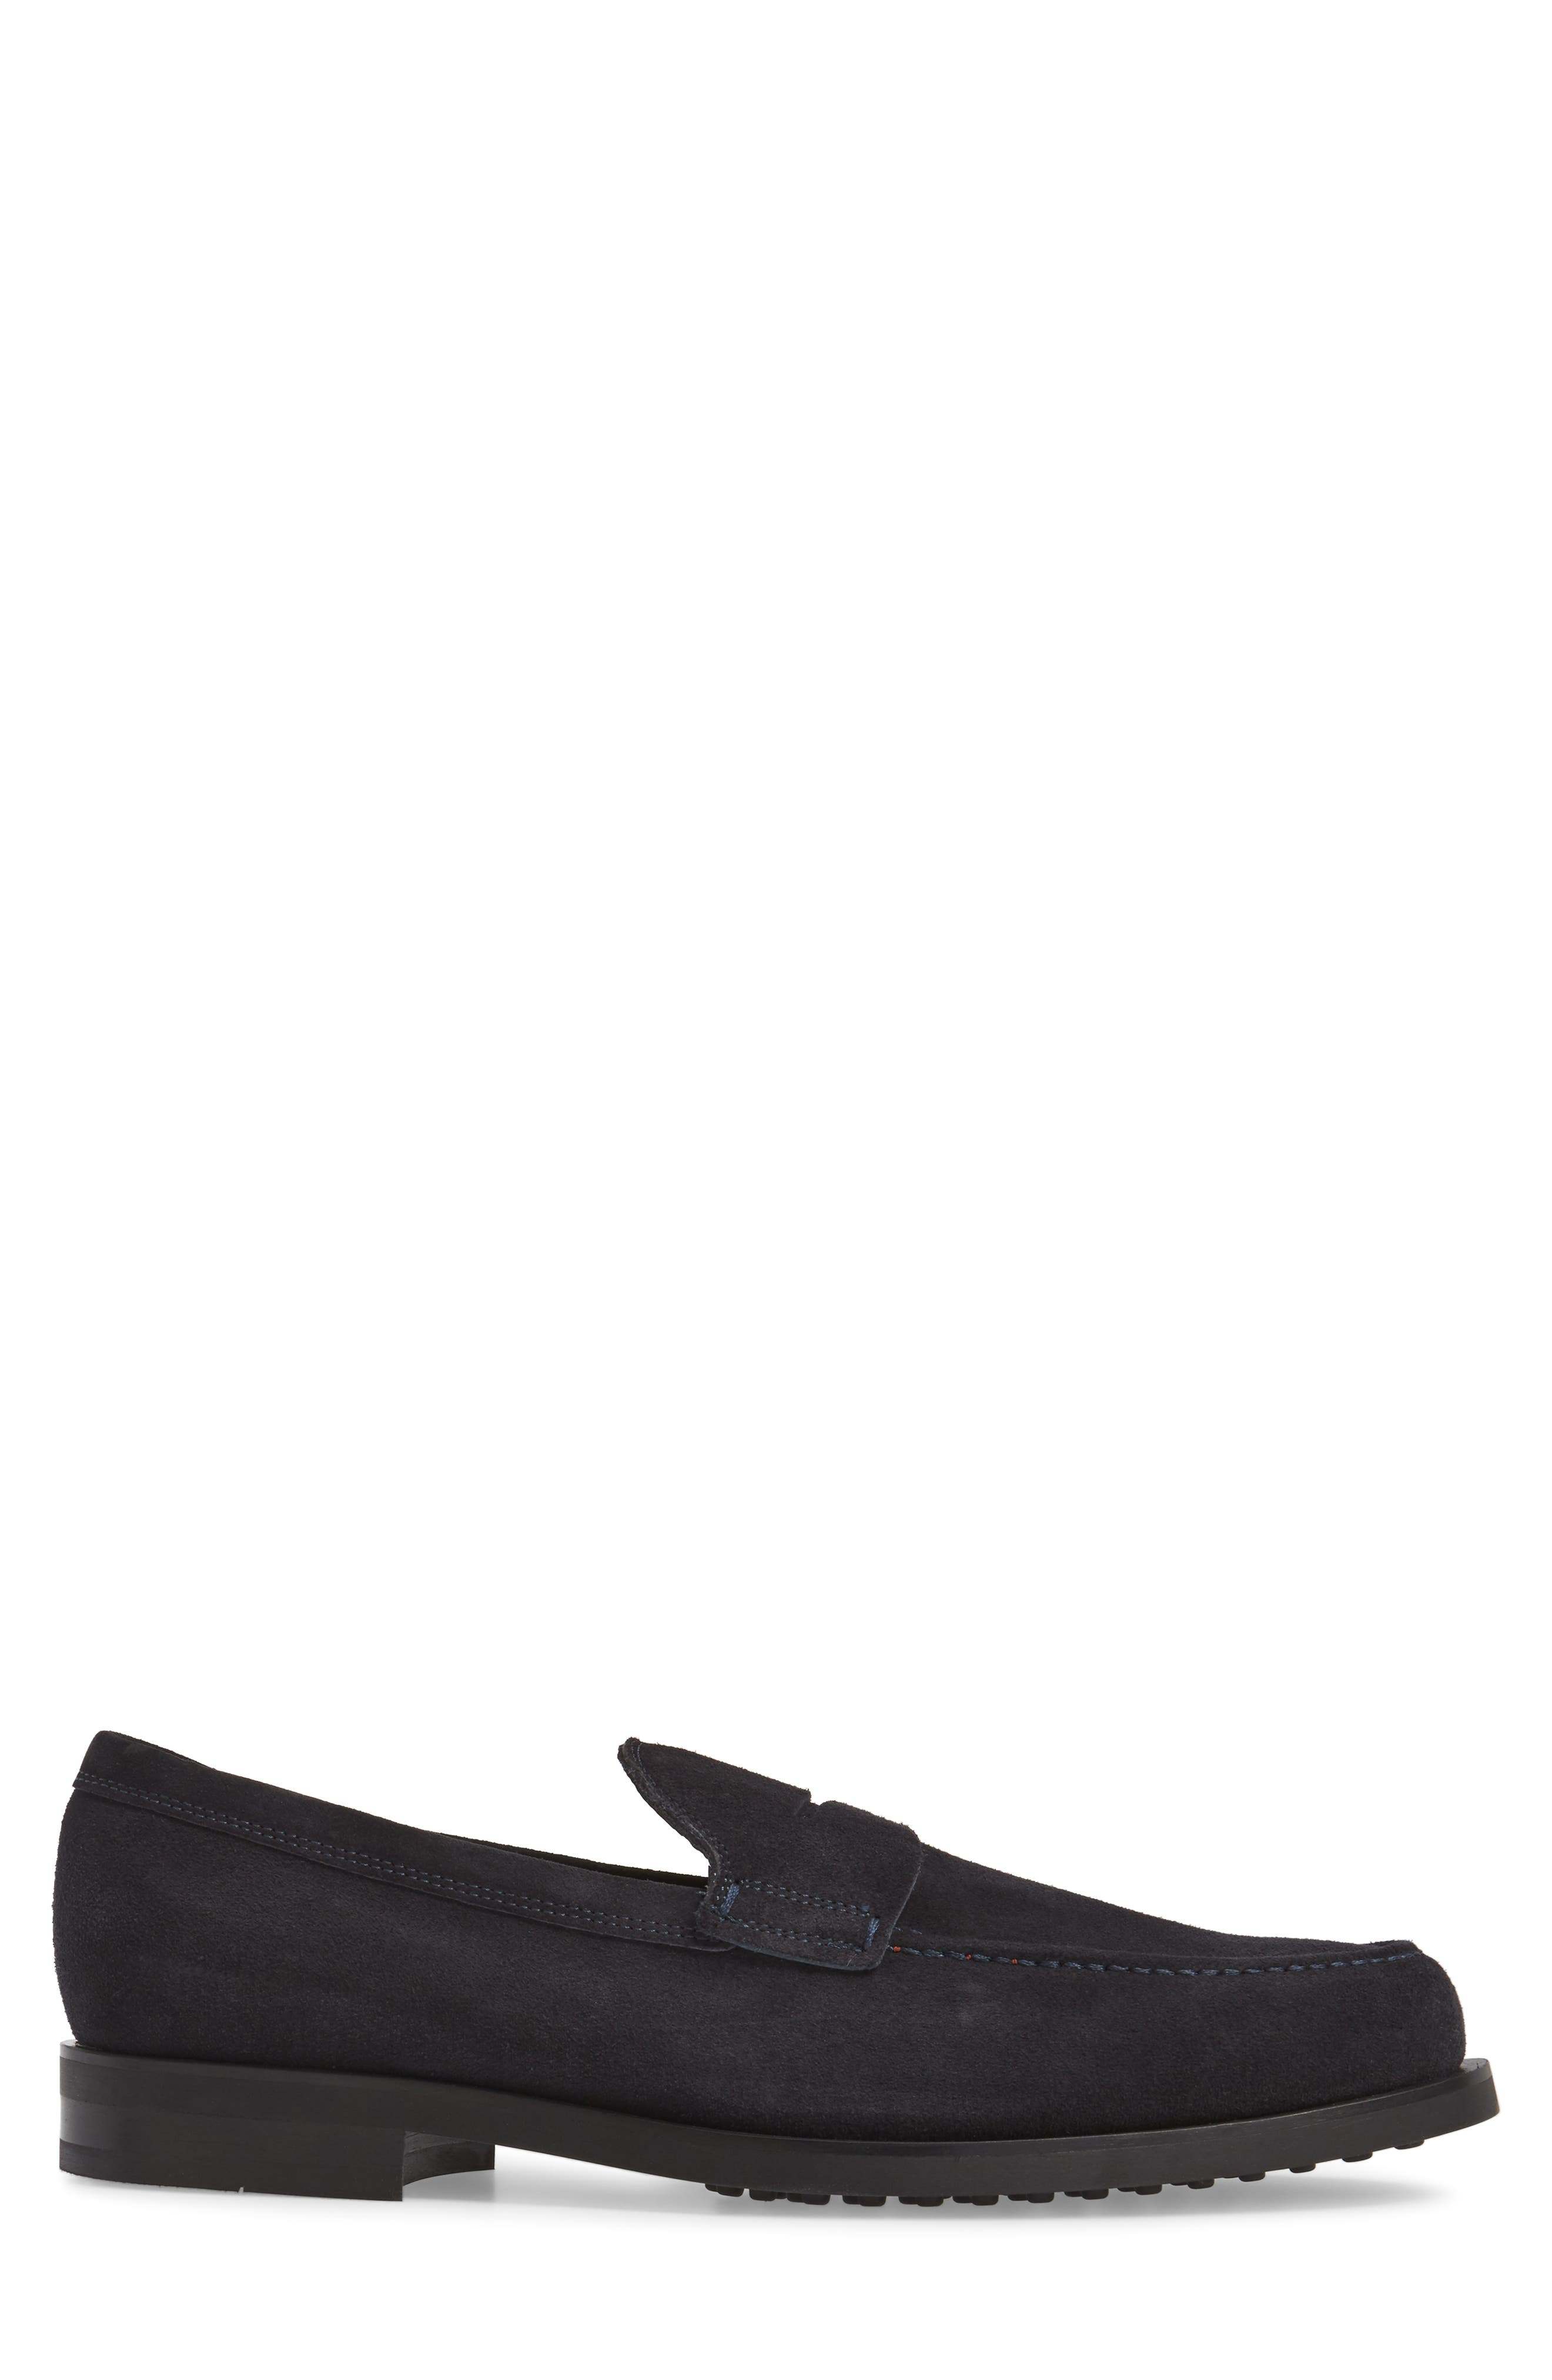 Penny Loafer,                             Alternate thumbnail 3, color,                             Navy Suede